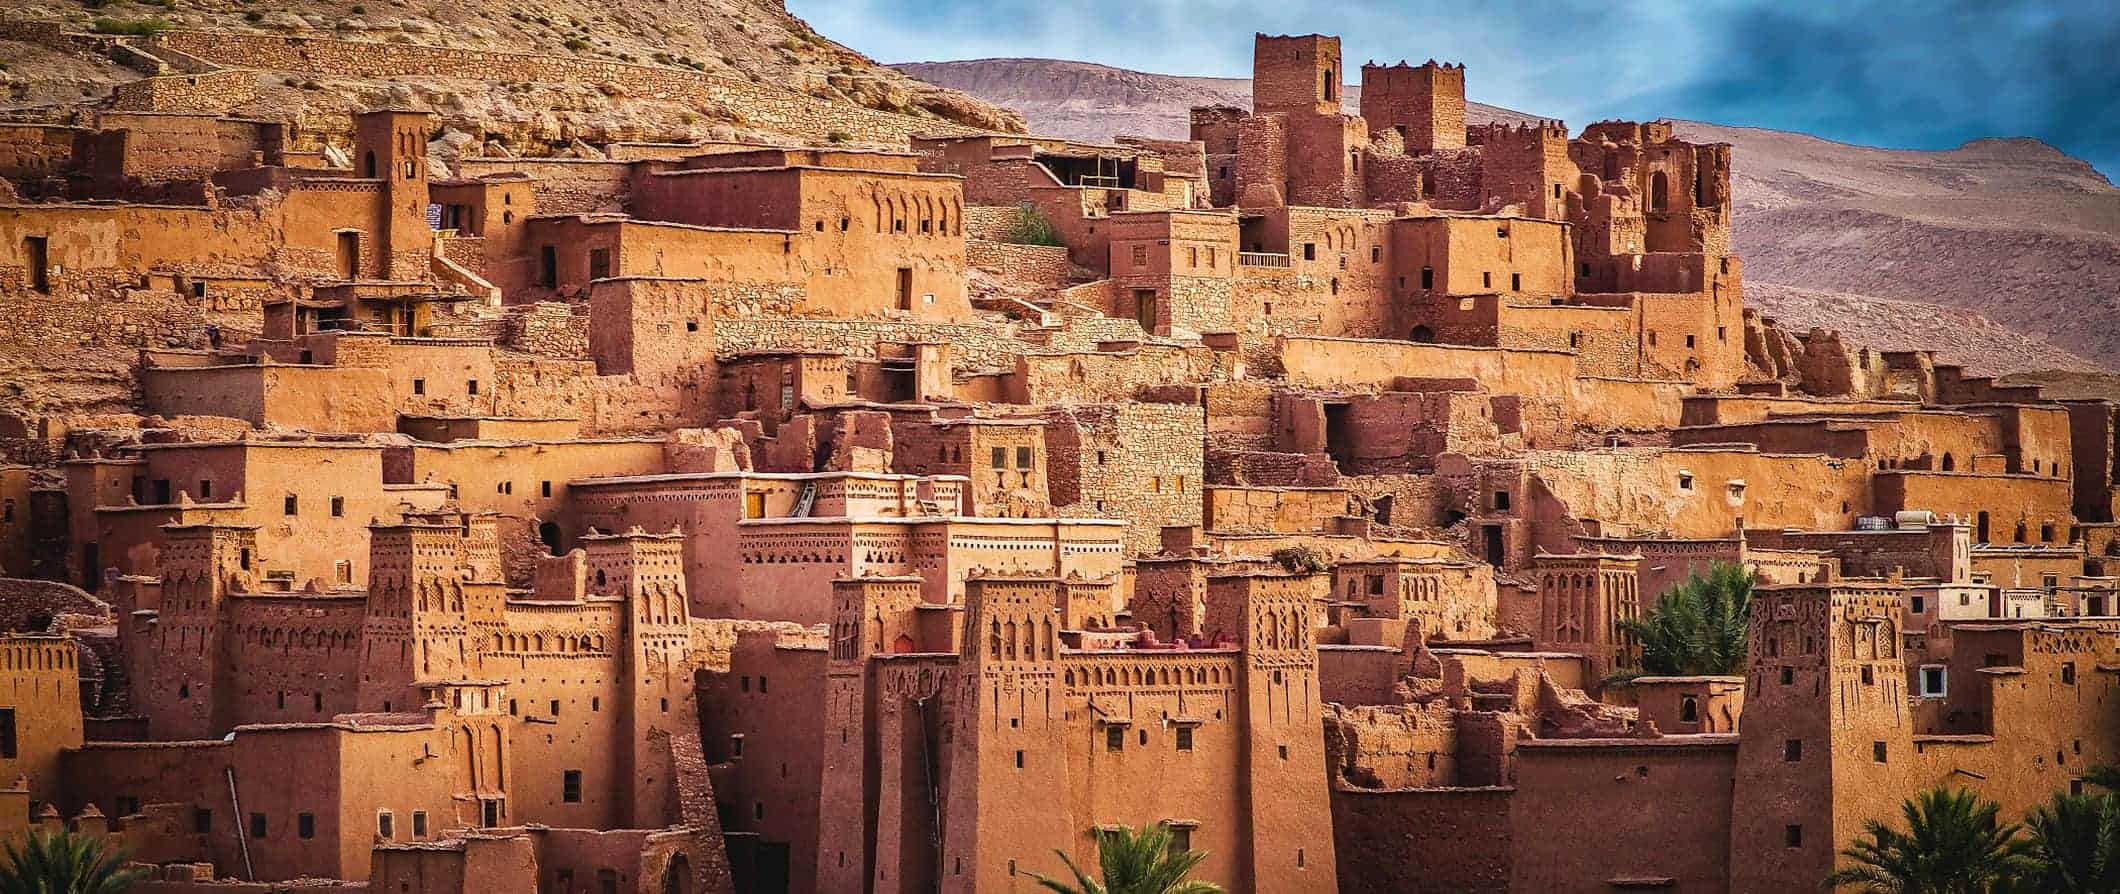 traditional sandstone buildings in Morocco